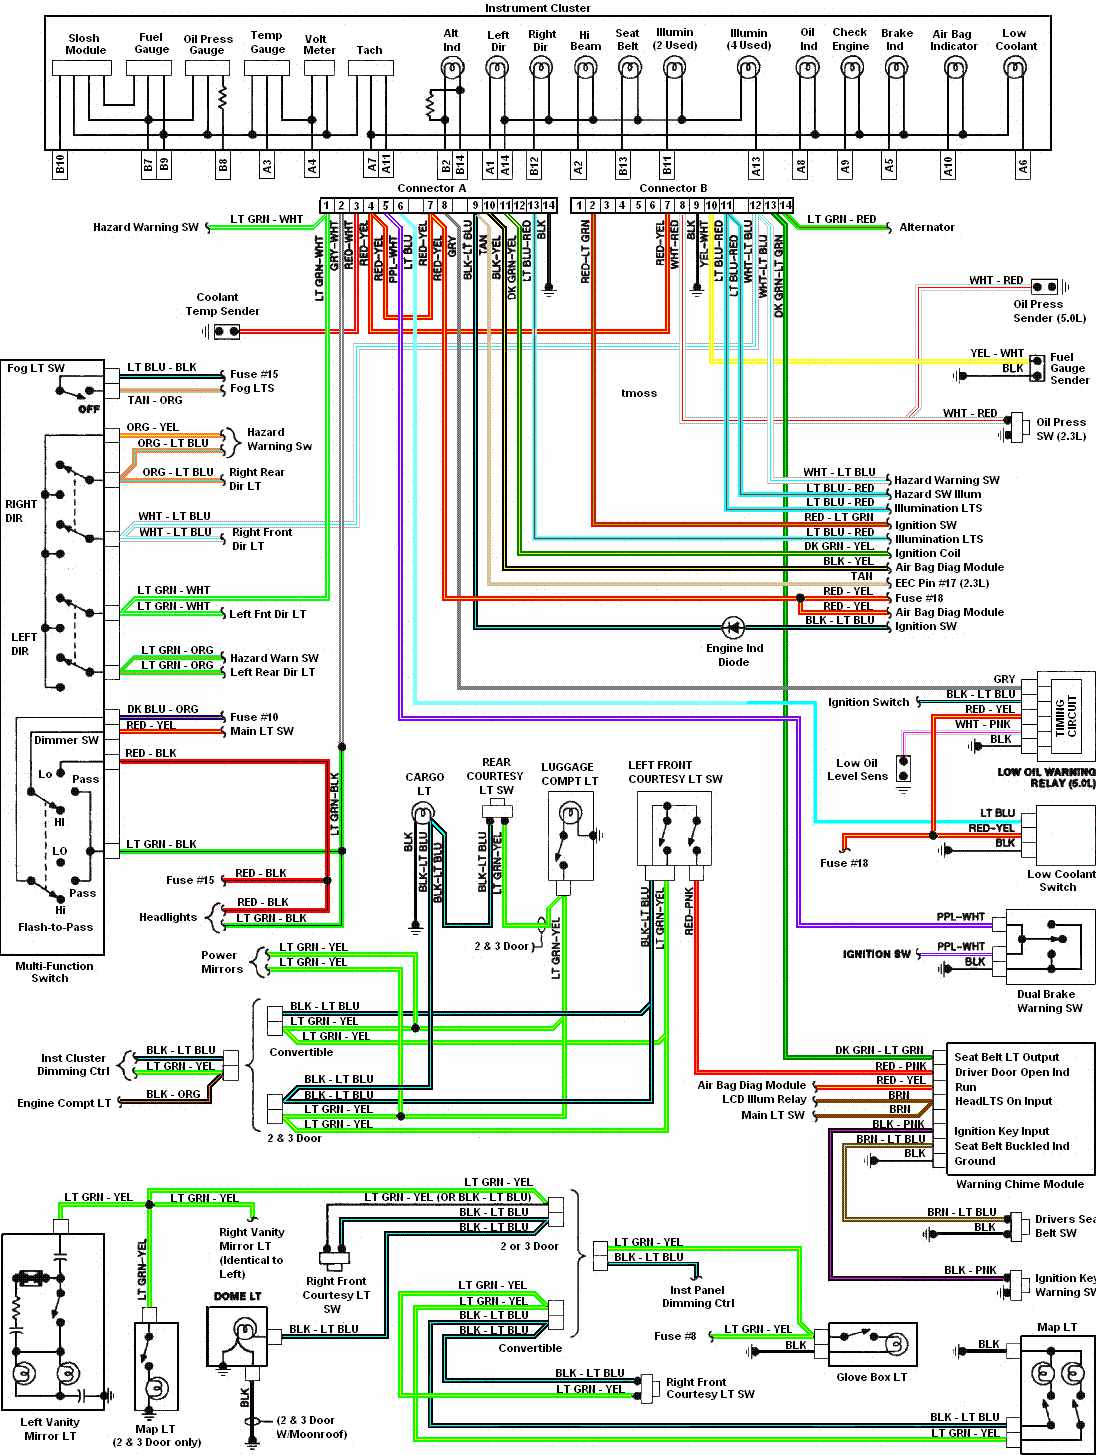 Instrument+Cluster+Wiring+Diagrams+Of+1987+Ford+Mustang+3rd+Generation ford focus wiring diagrams ford free wiring diagrams 2001 ford taurus radio wiring harness diagram at fashall.co